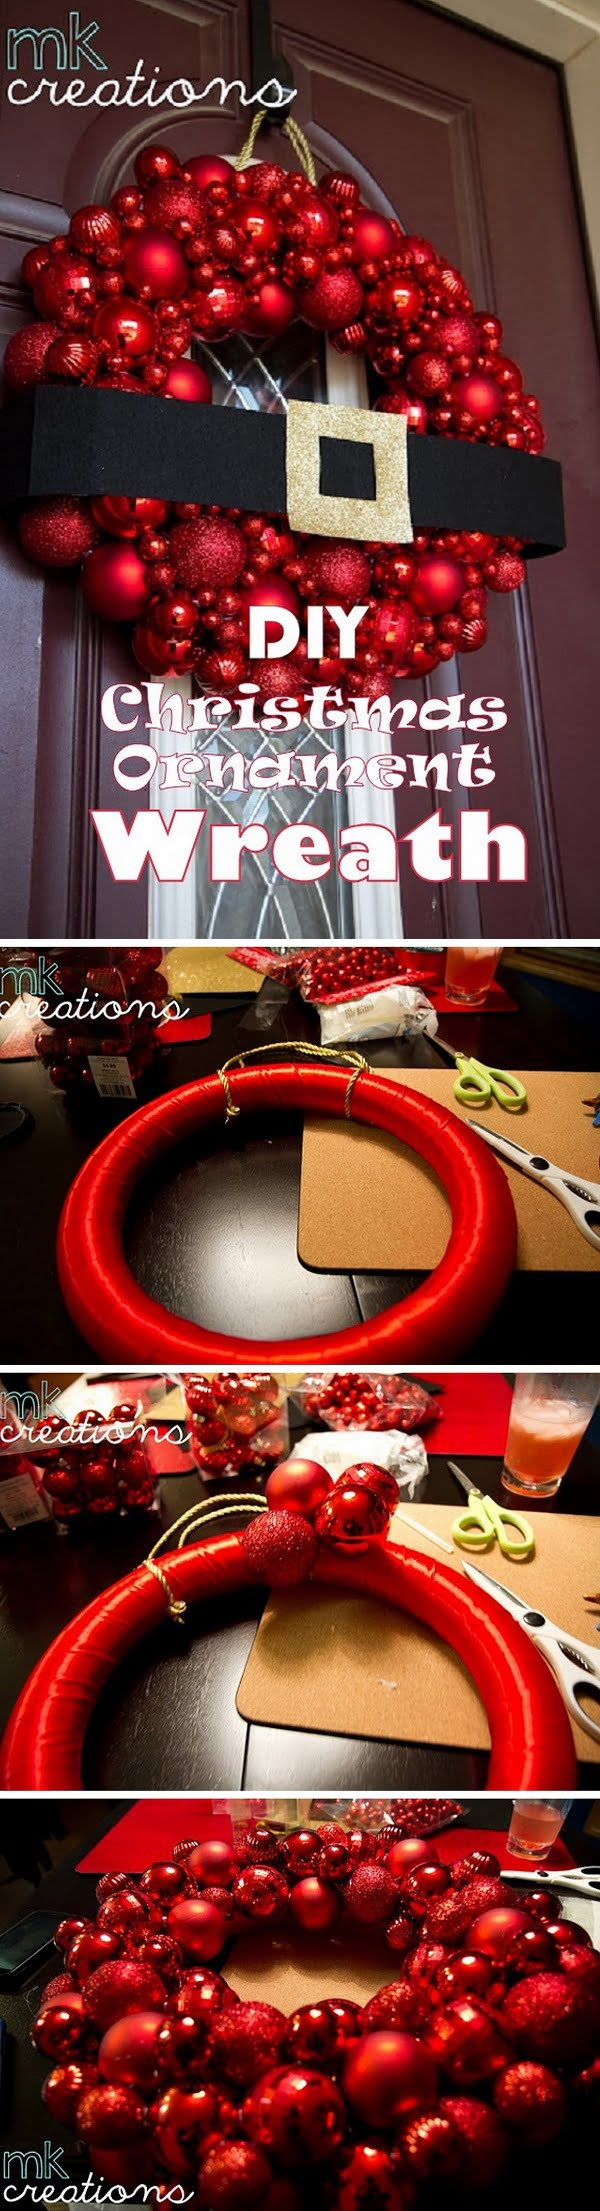 Check out this easy idea on how to make a #DIY #Christmas ornament wreath #crafts #homedecor #project